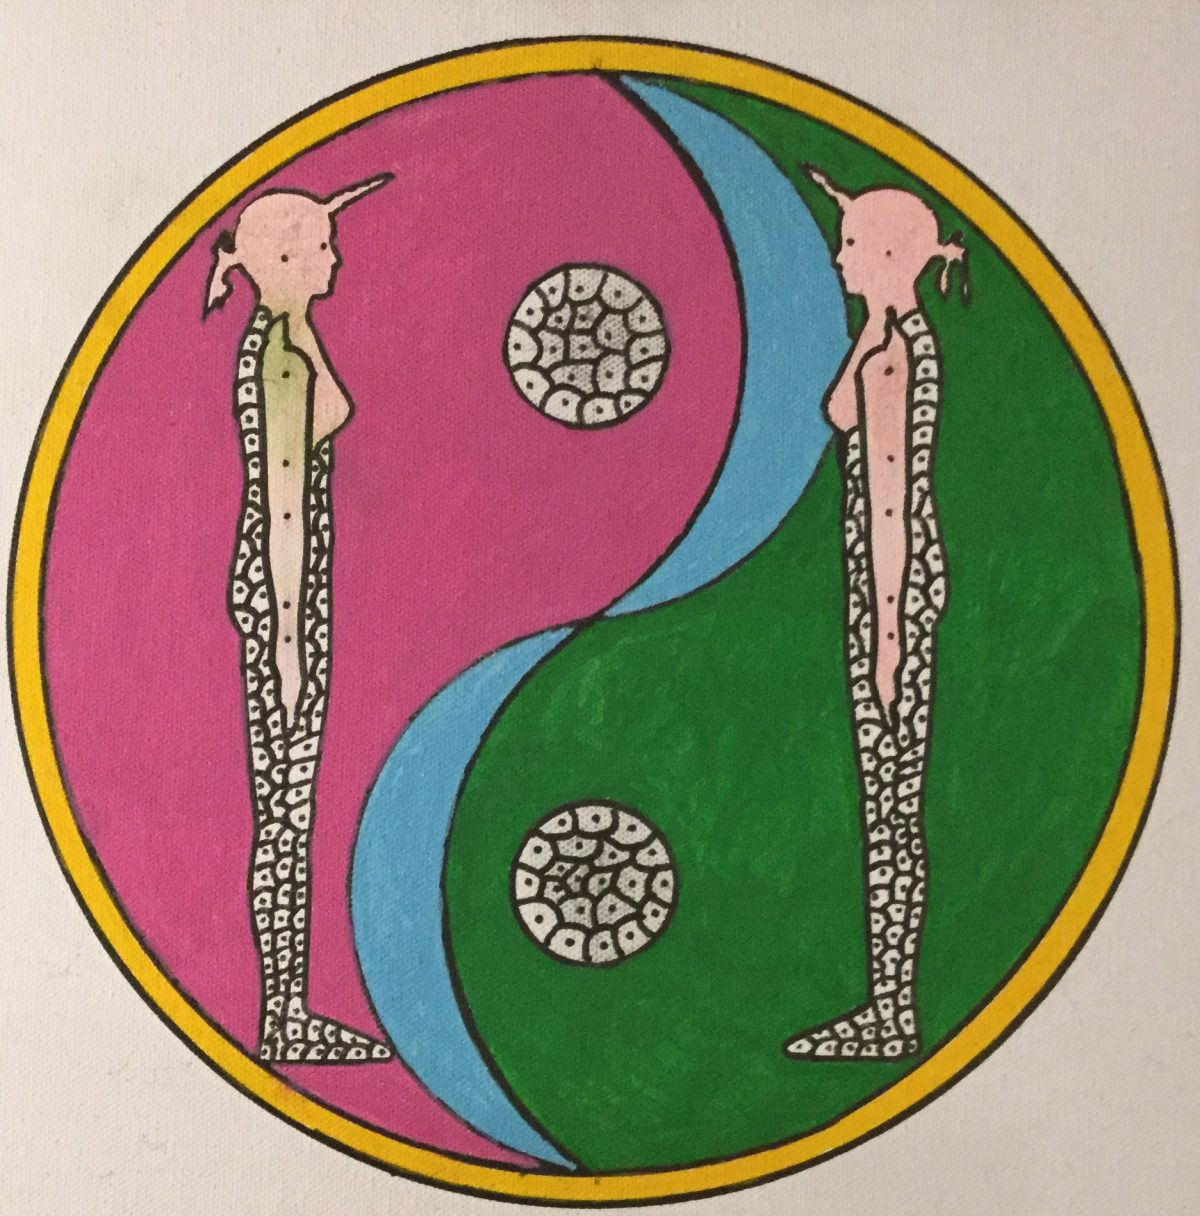 A painting of two pink figures facing each other in front of a circle divided in half by a curved blue line.  One side of the circle is green, the other is pink.